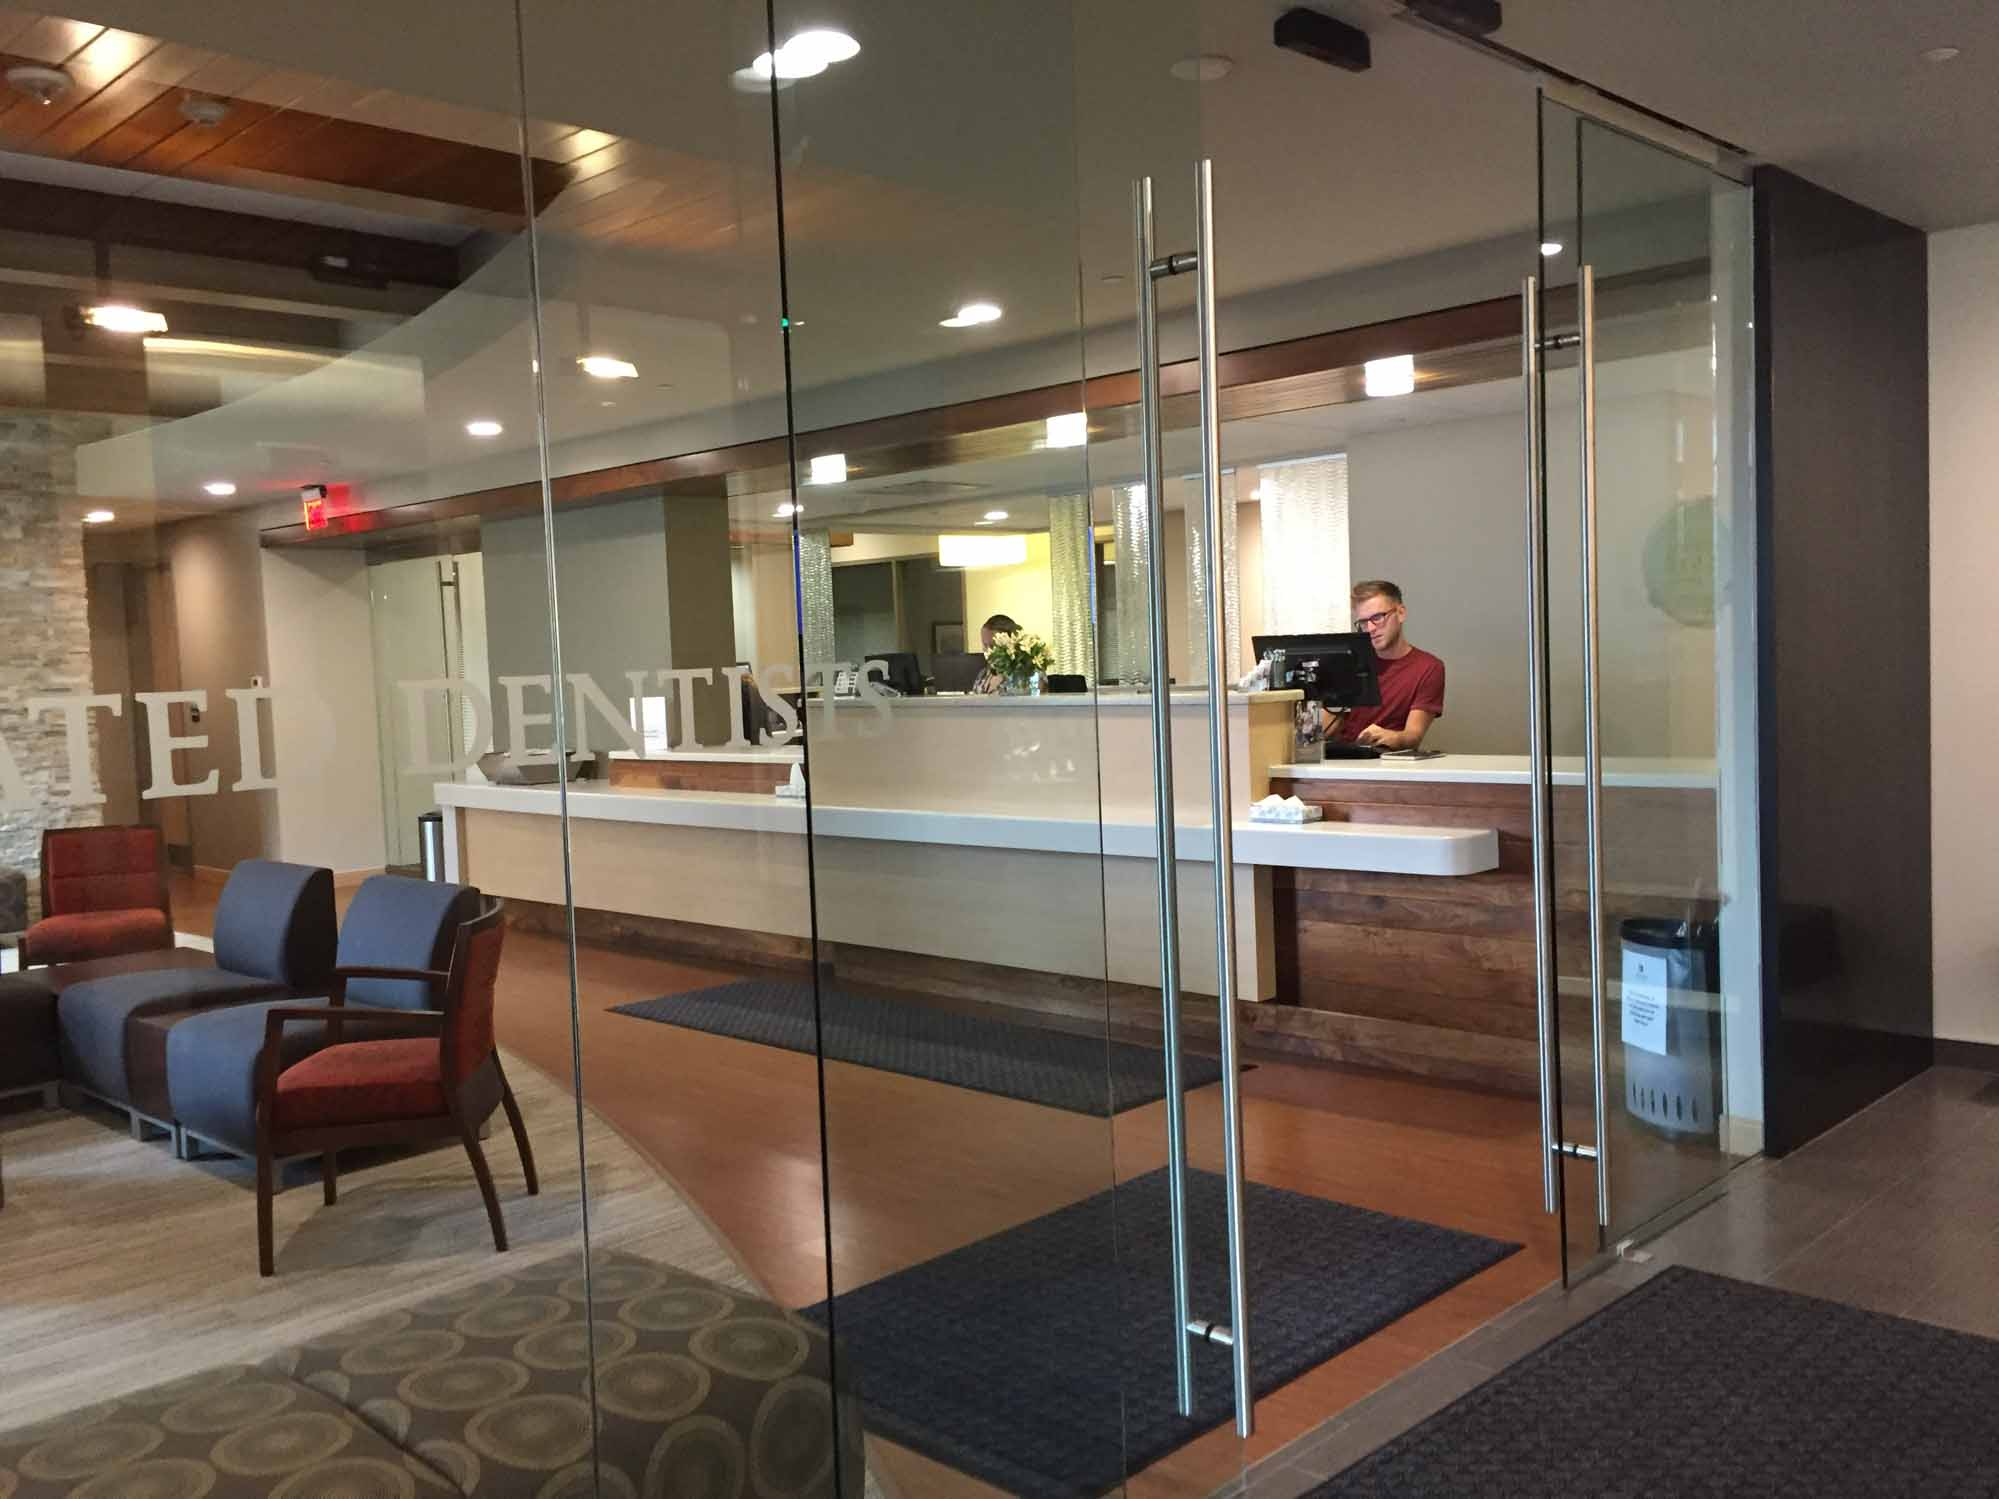 Reception area of Associated Dentists in Madison Location